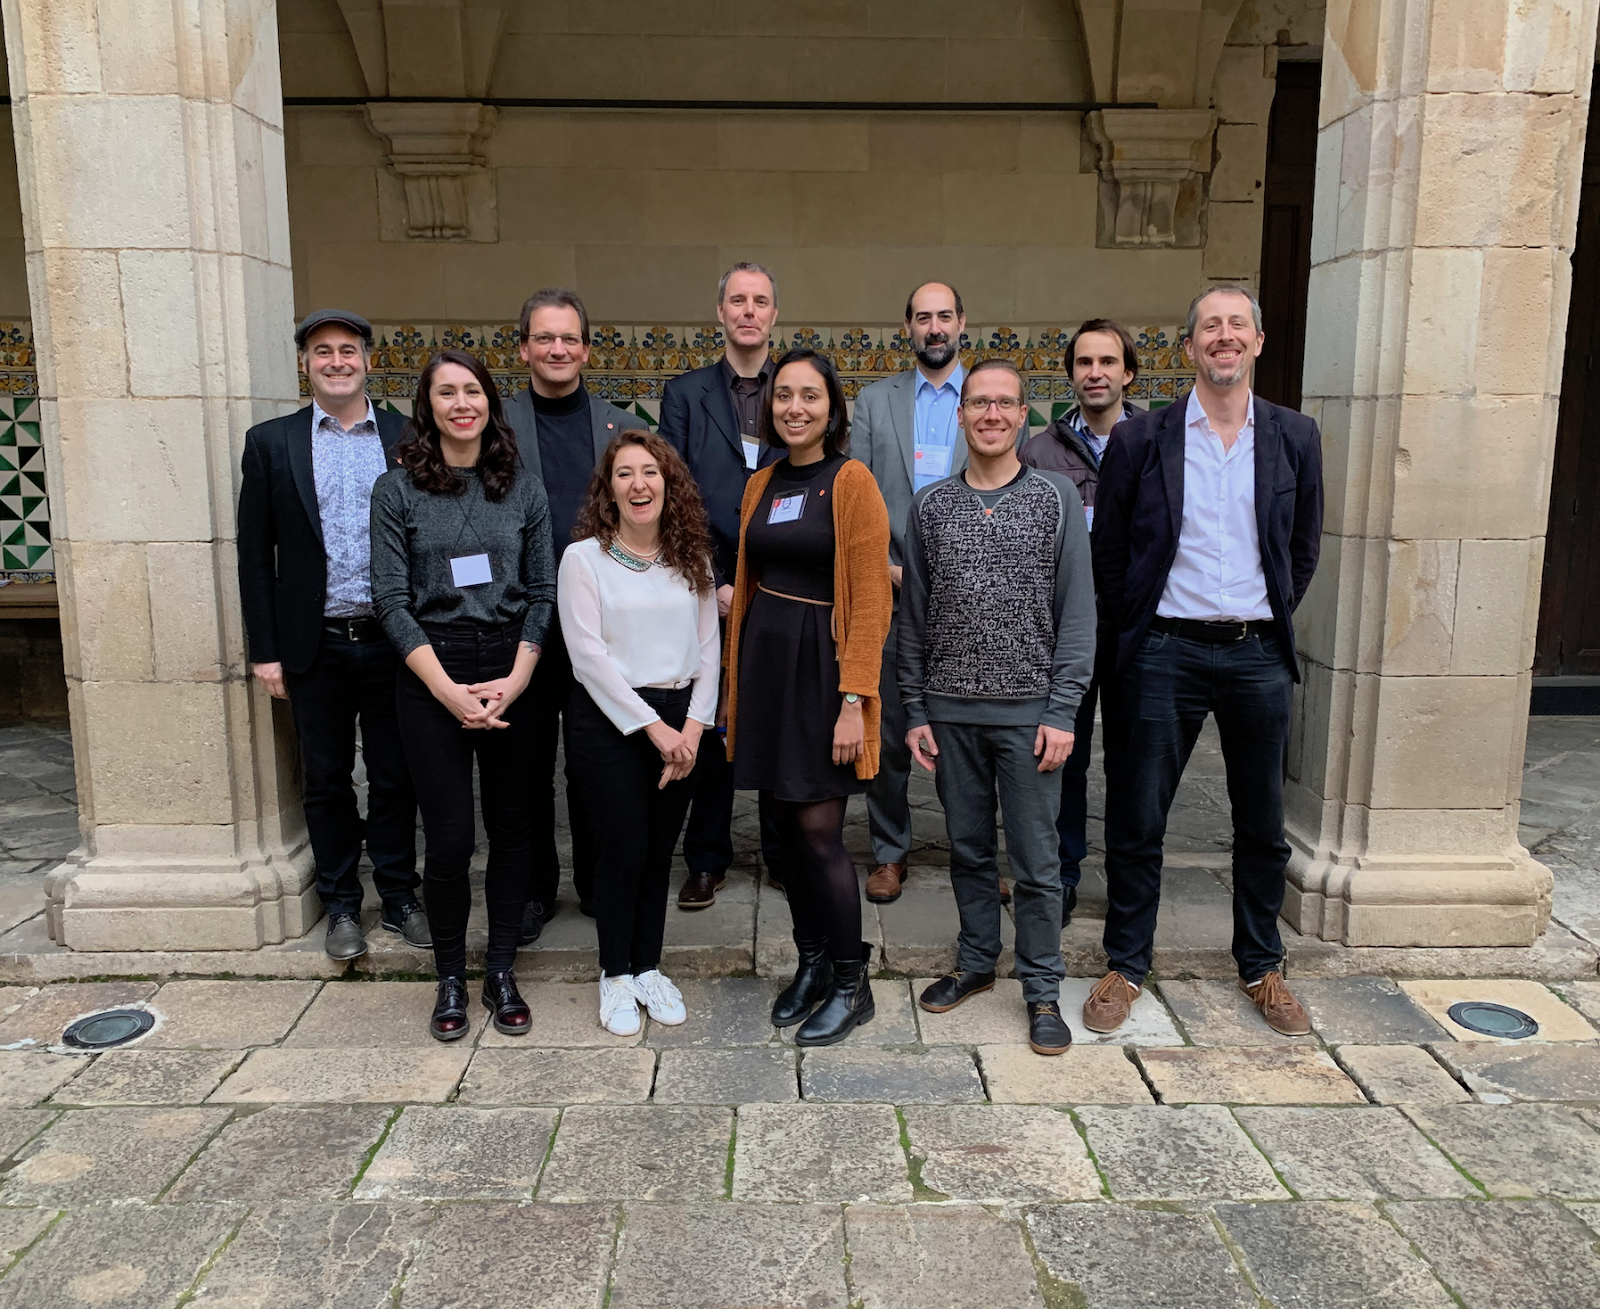 The new YAE Board, taken at the Barcelona AGM, November 2018 (Lydia Schumacher and Kate Black not present)